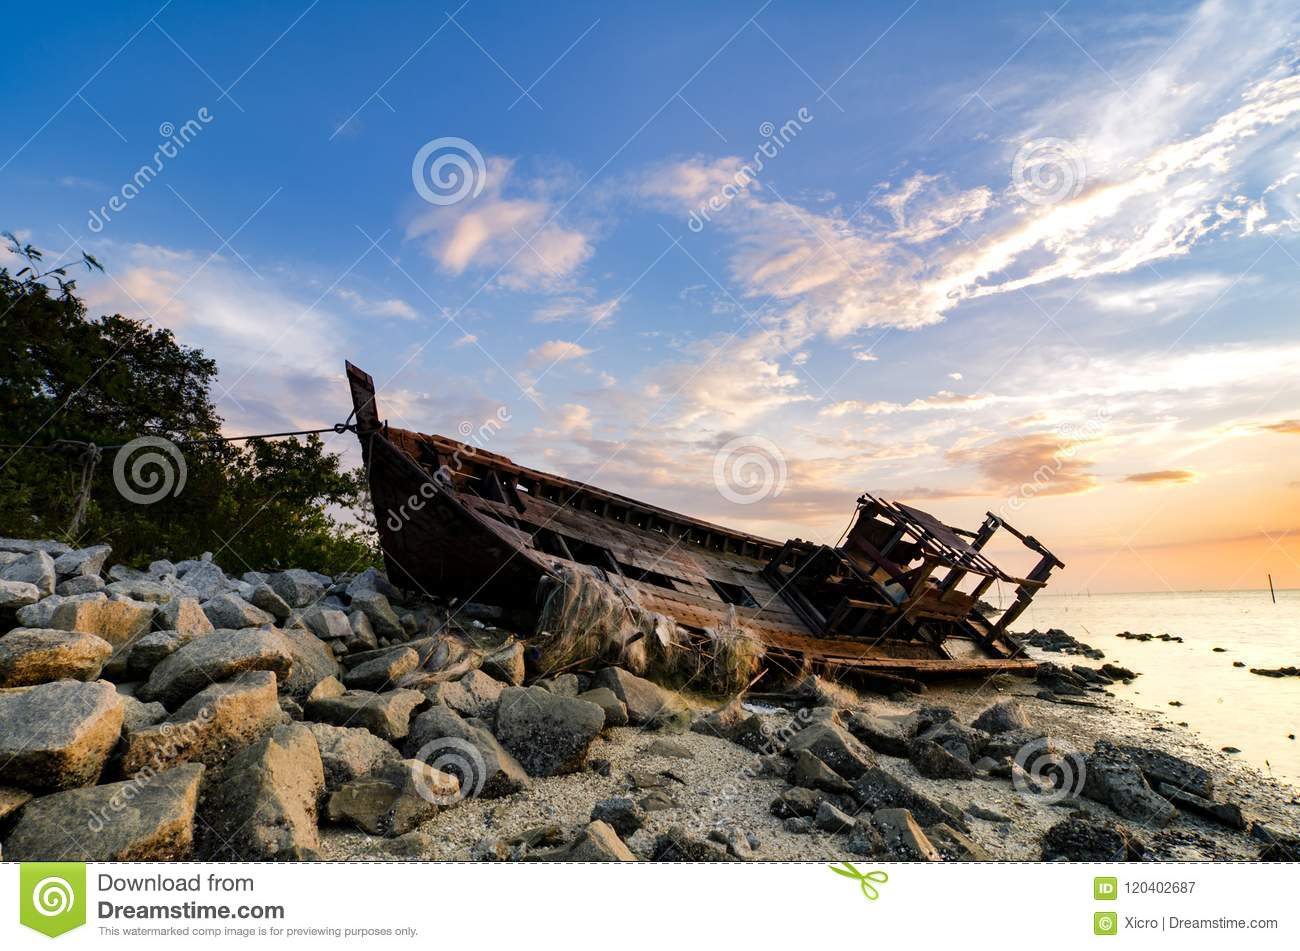 Silhouette image of abandon shipwrecked on rocky shoreline. dark cloud and soft on water